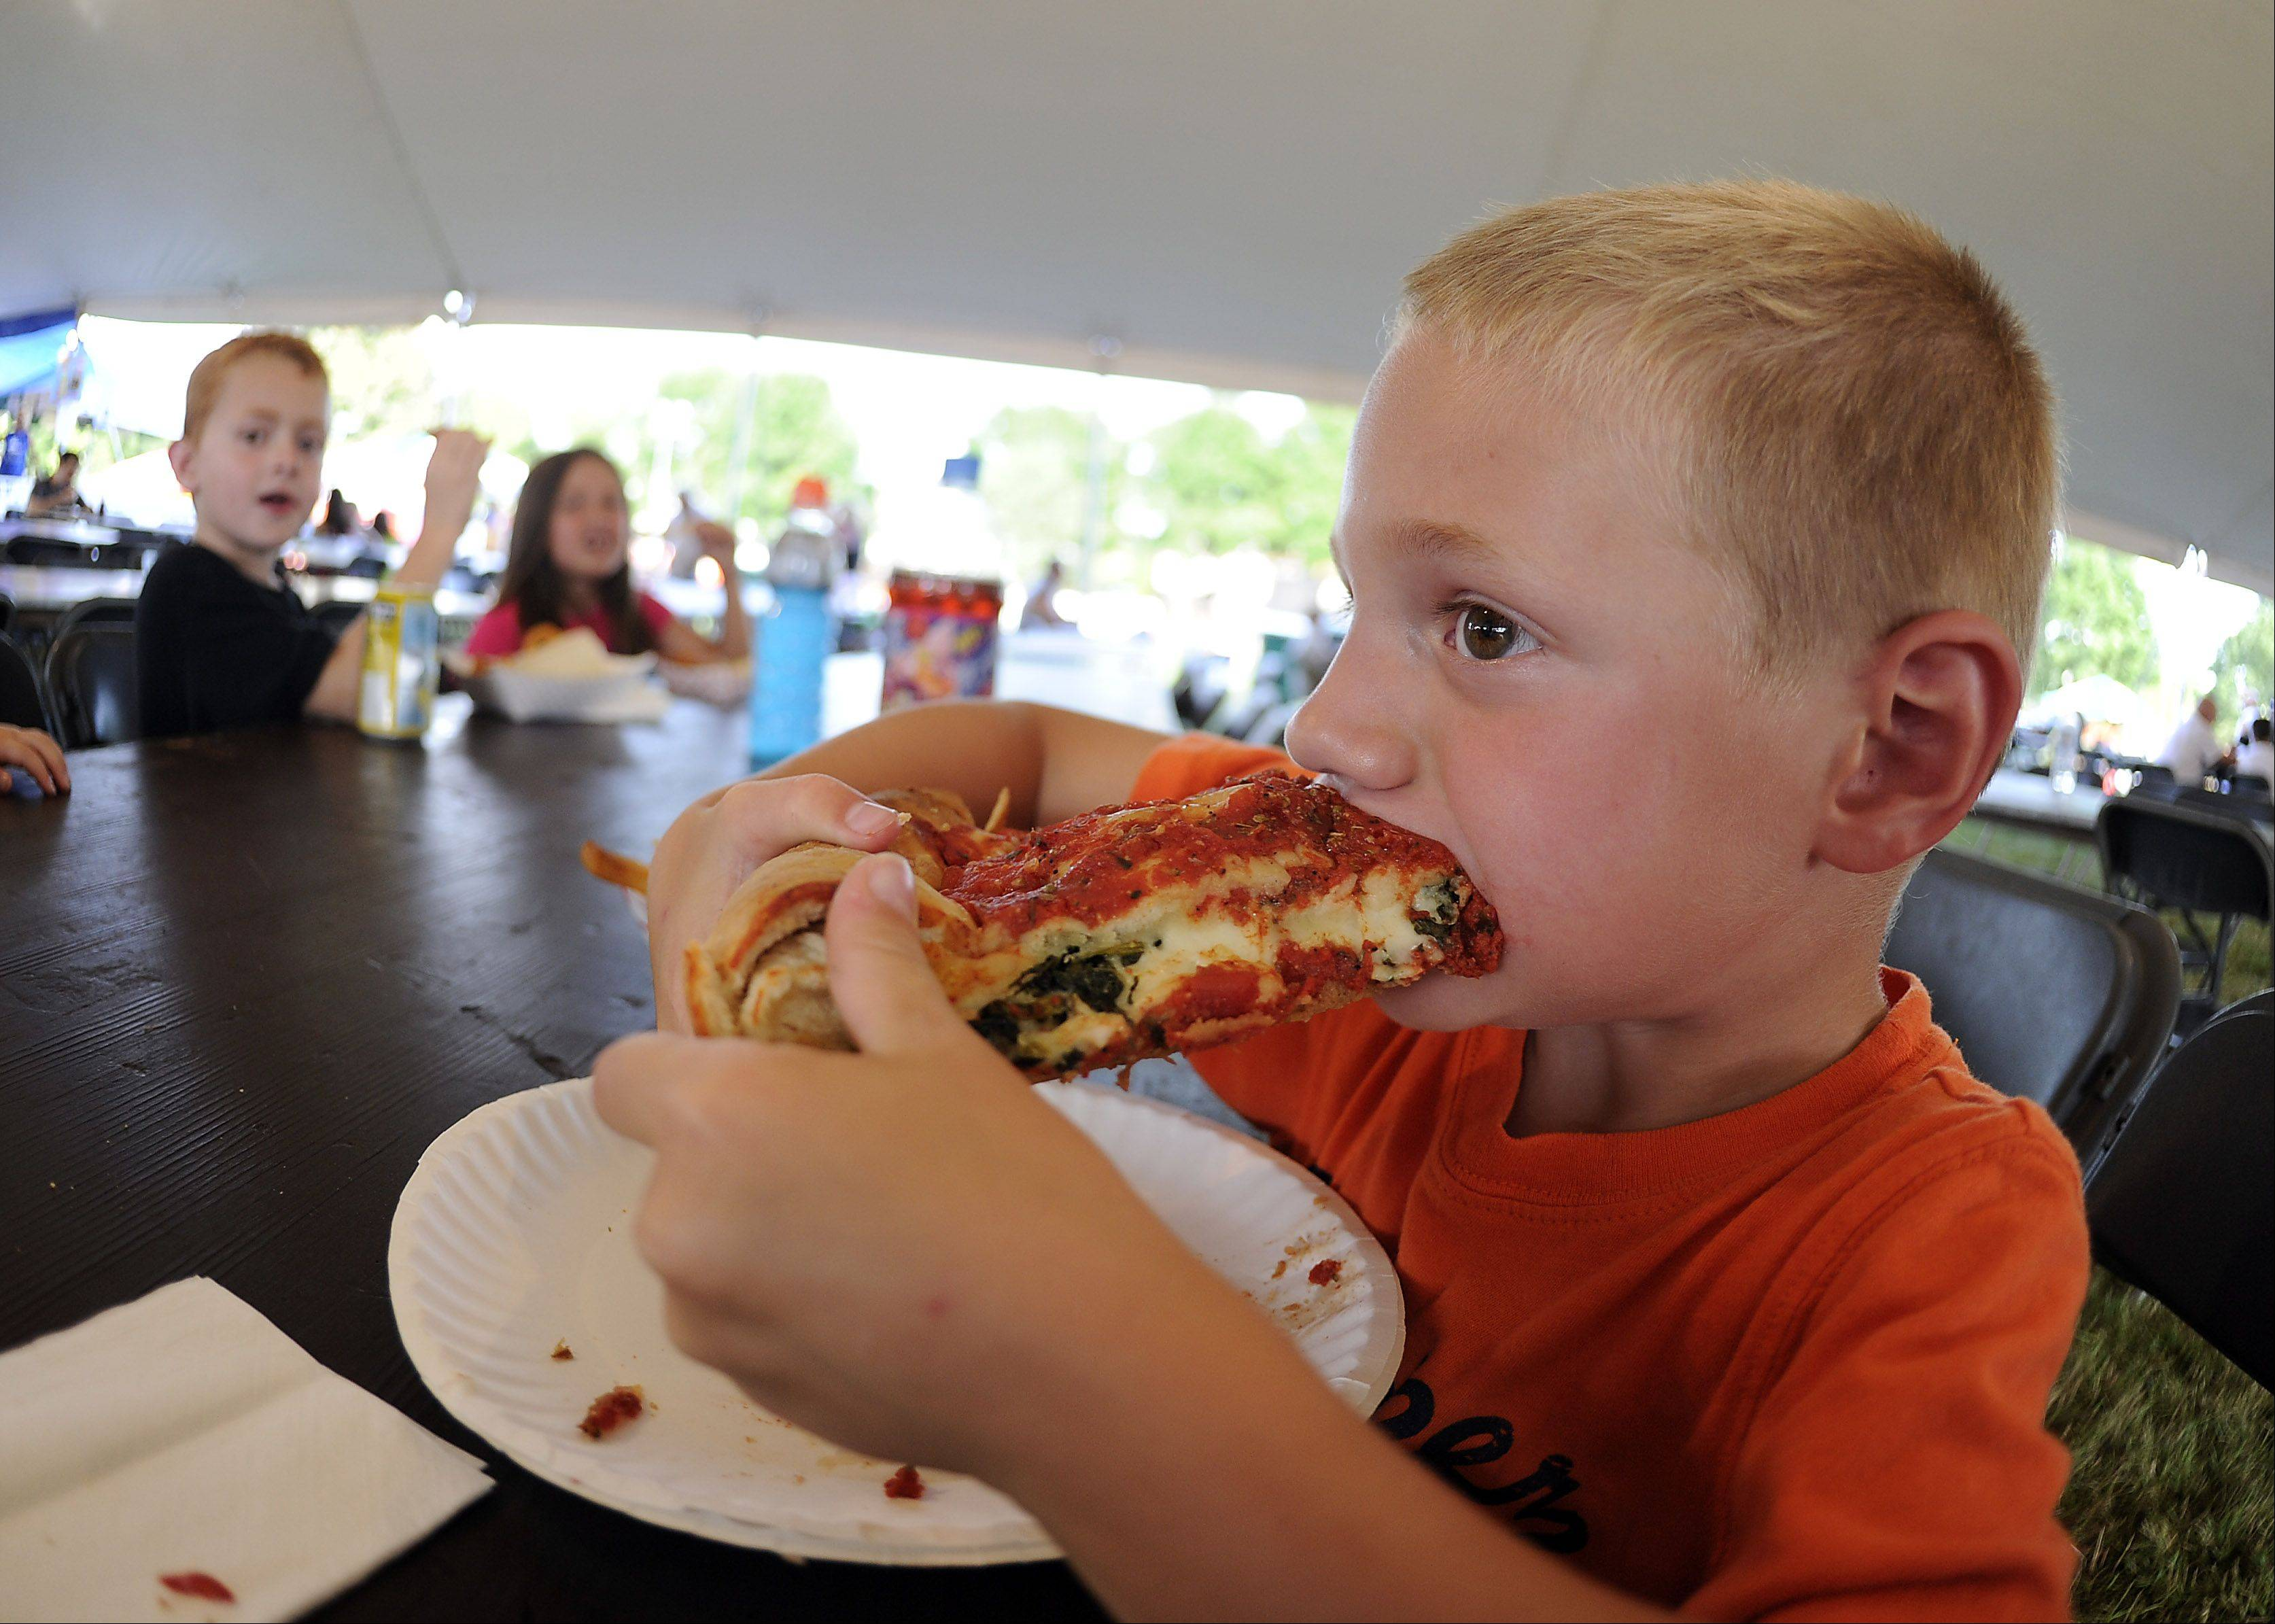 Zachary Flosi of St. Charles chows down on some Chicago-style pizza at the Streamwood Summer Celebration on Friday.